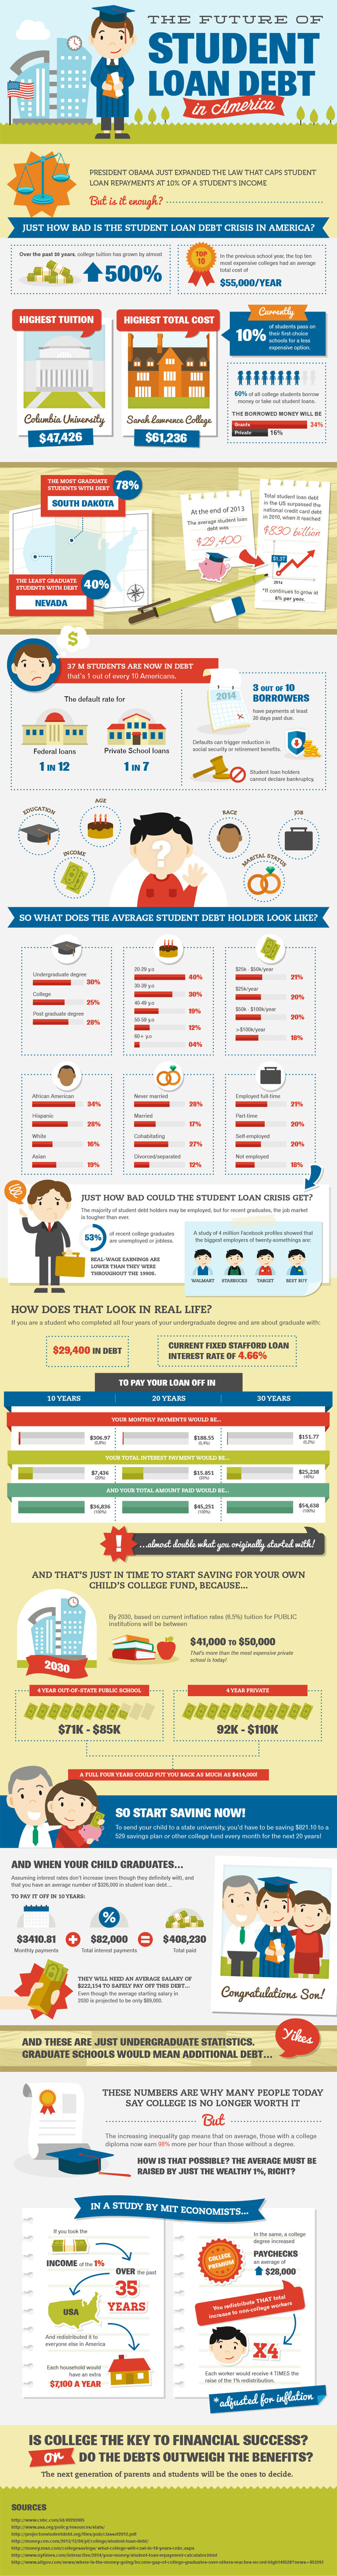 The Future of Student Loan Debt in America Infographic